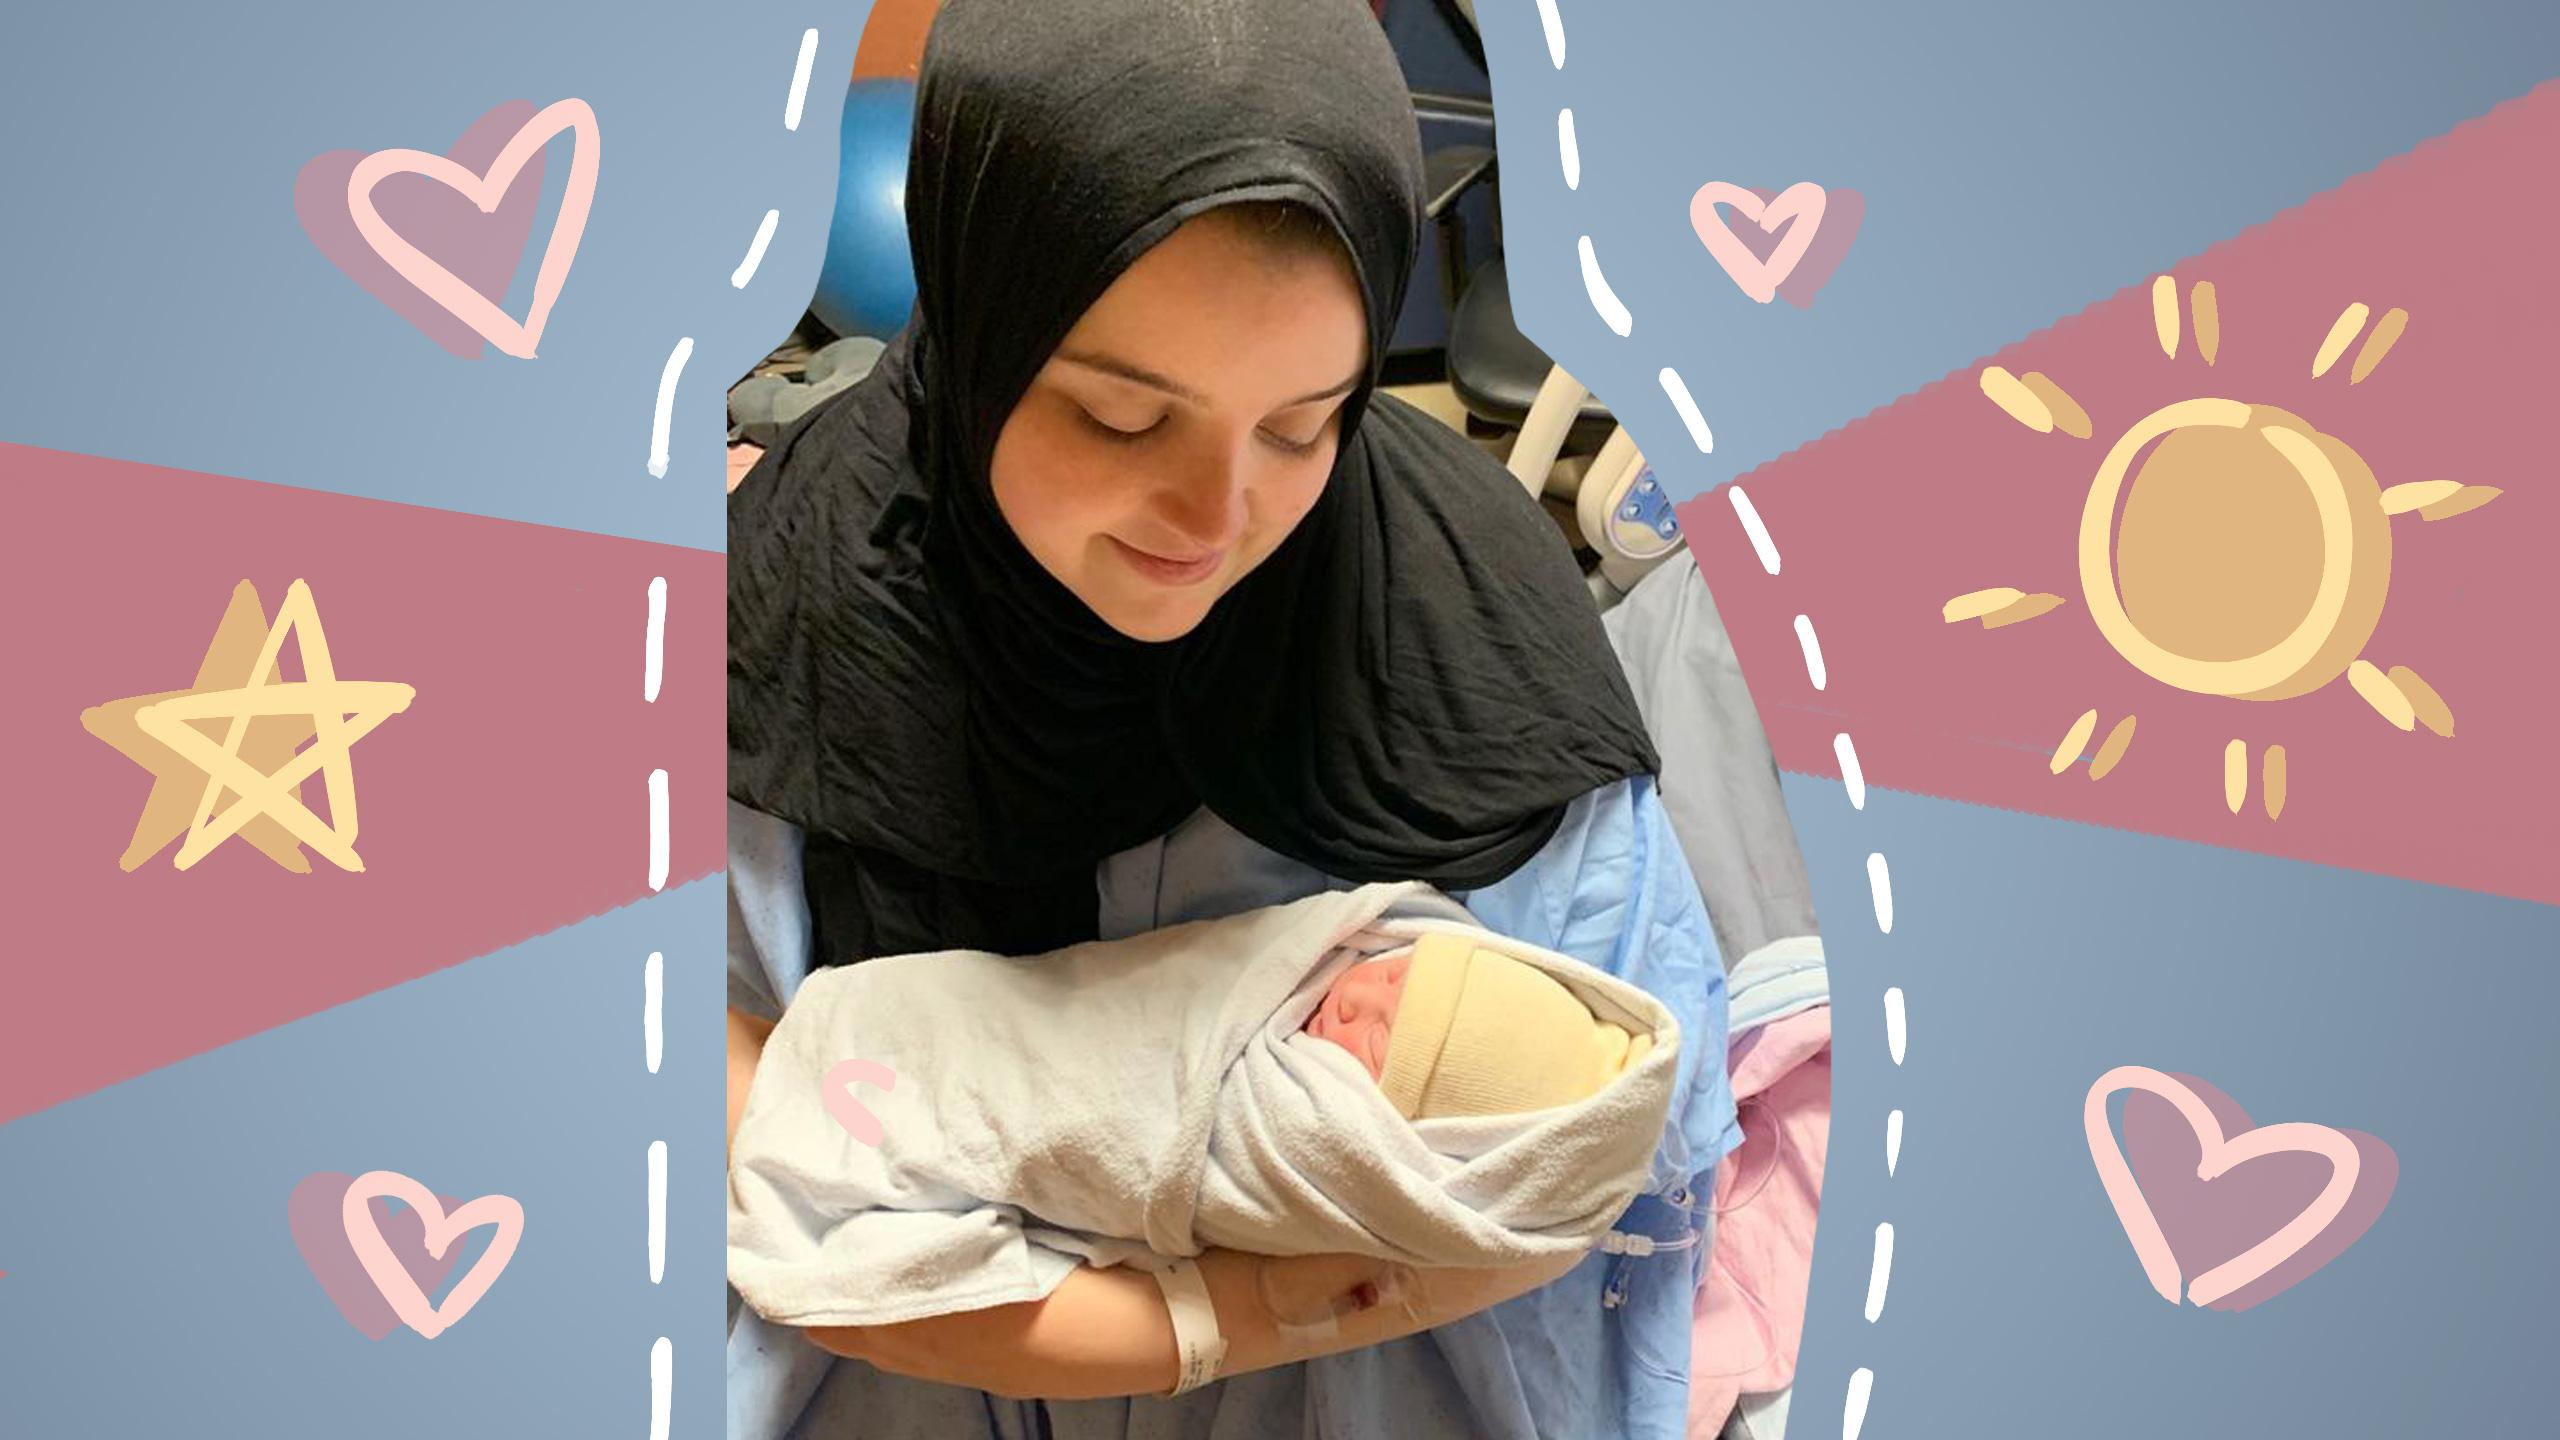 A smiling woman sitting in a hospital bed wearing a hijab holding a newborn baby in her arms.